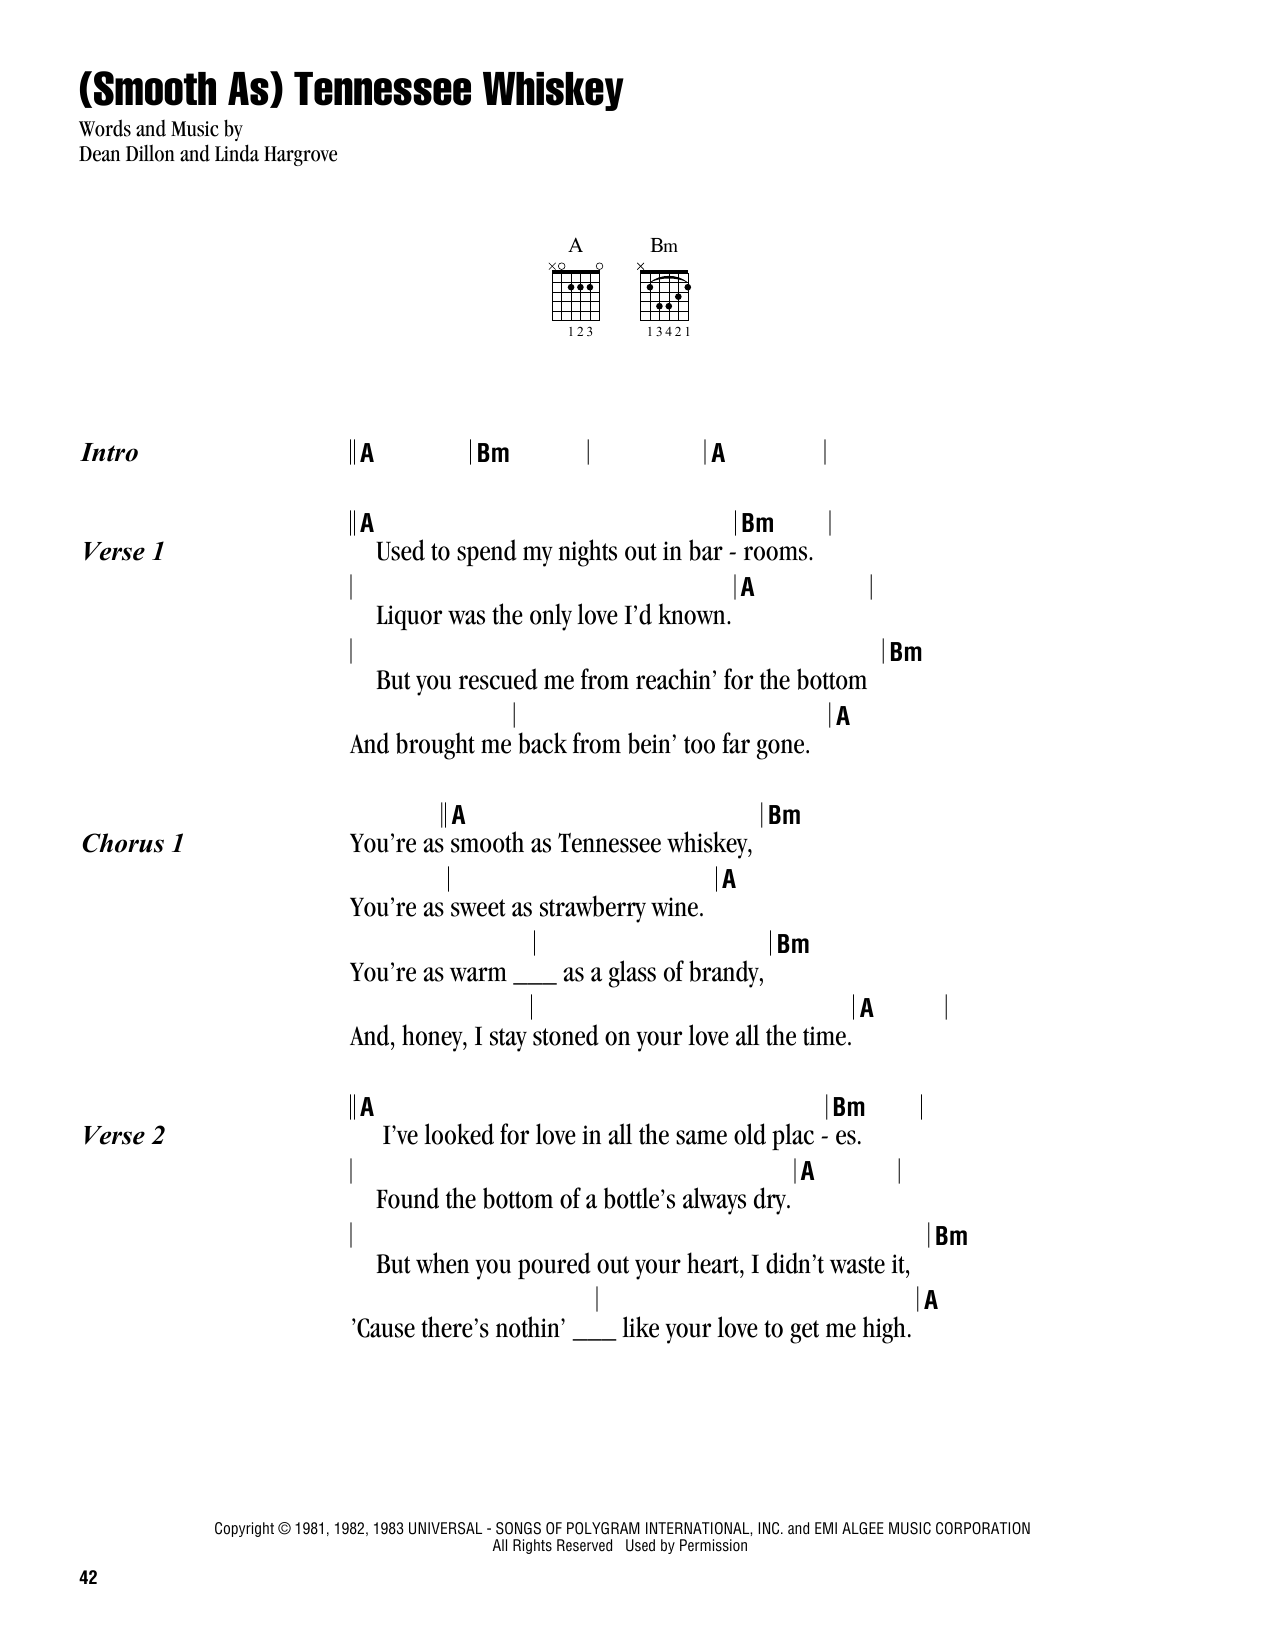 Smooth as tennessee whiskey sheet music ukulele pinterest smooth as tennessee whiskey sheet music hexwebz Images